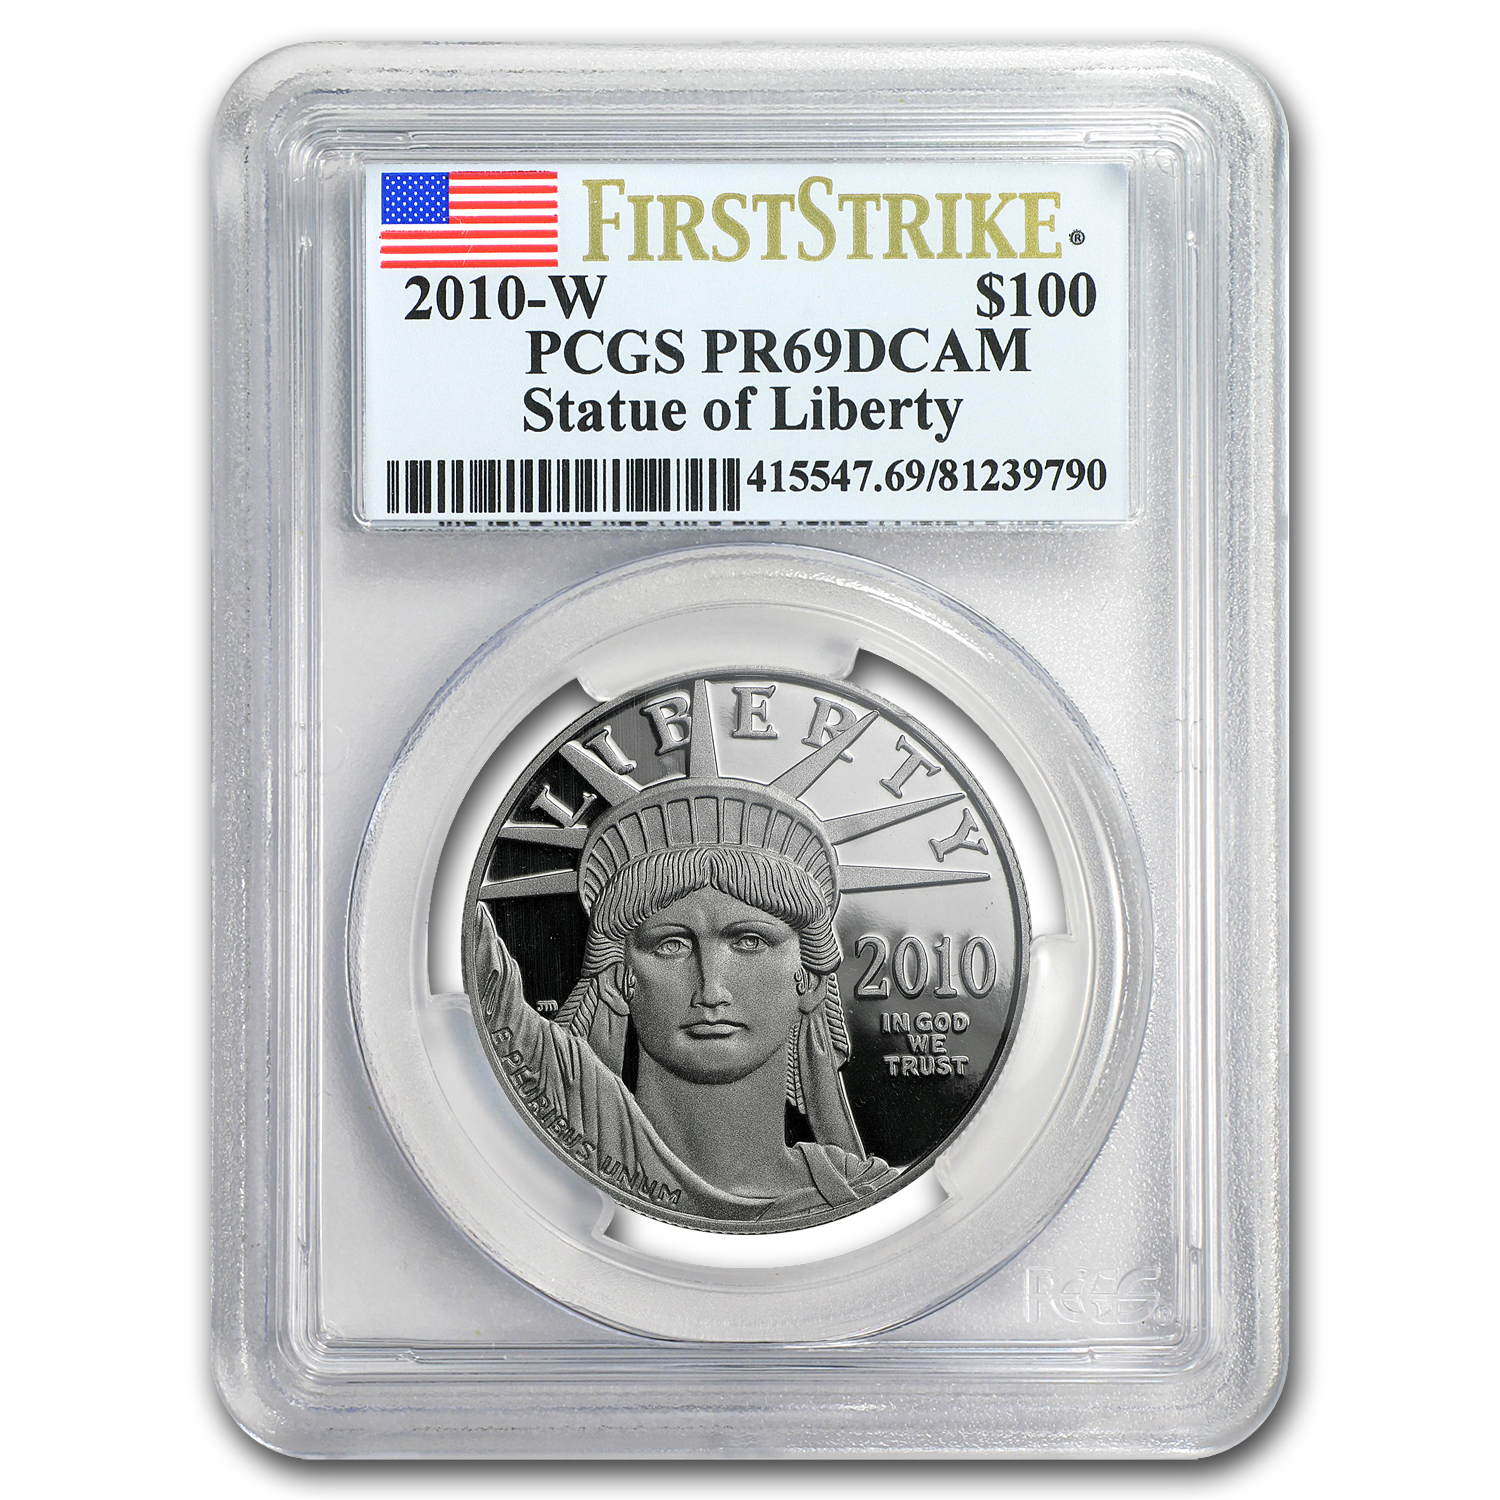 2010-W 1 oz Proof Platinum American Eagle PR-69 PCGS (FS)